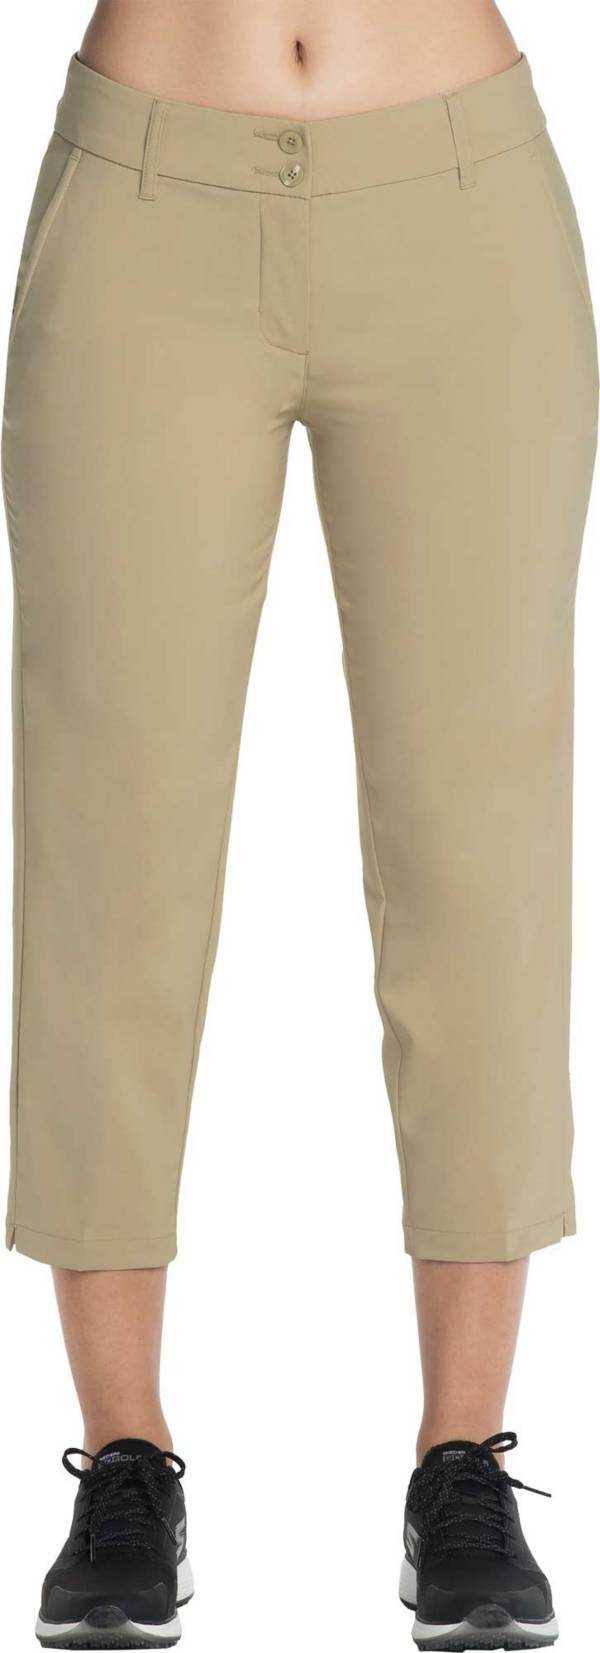 Skechers Women's Go Golf High Side Crop Golf Pants product image